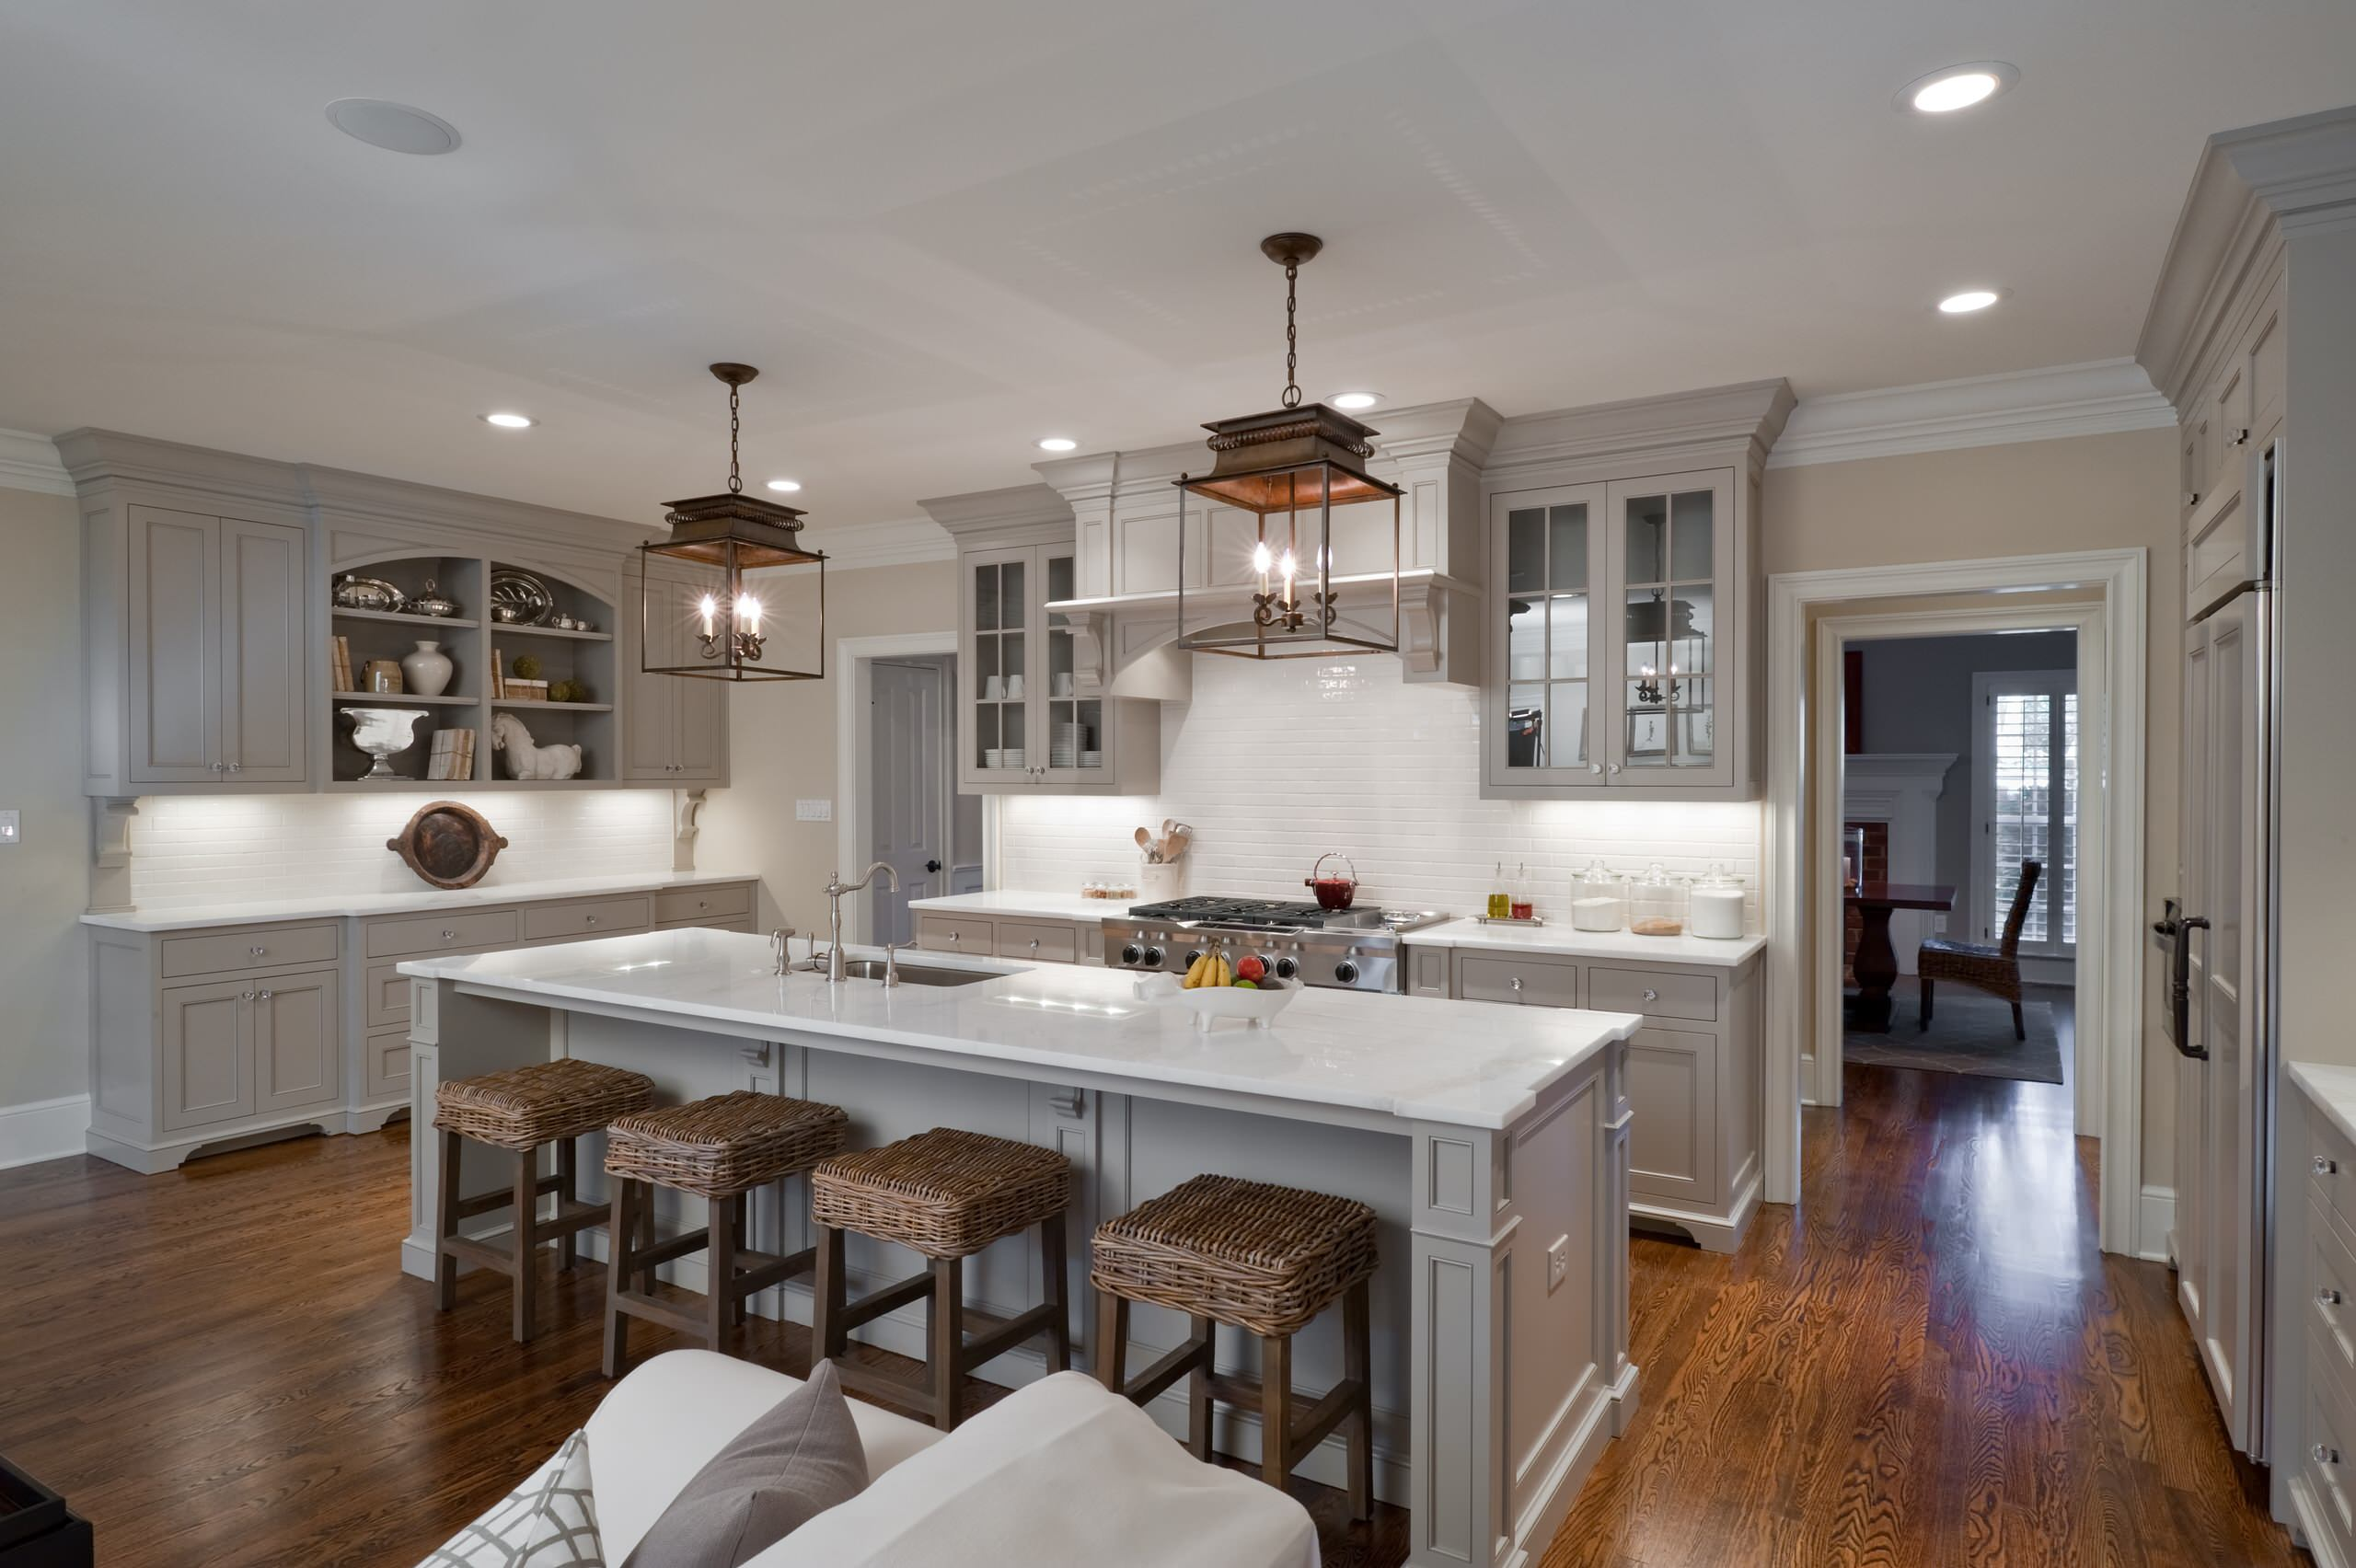 Kitchen paint colors with oak cabinets for Traditional Kitchen barstools breakfast nook brookhaven cabinets Carrara ceiling lighting chalkboard paint